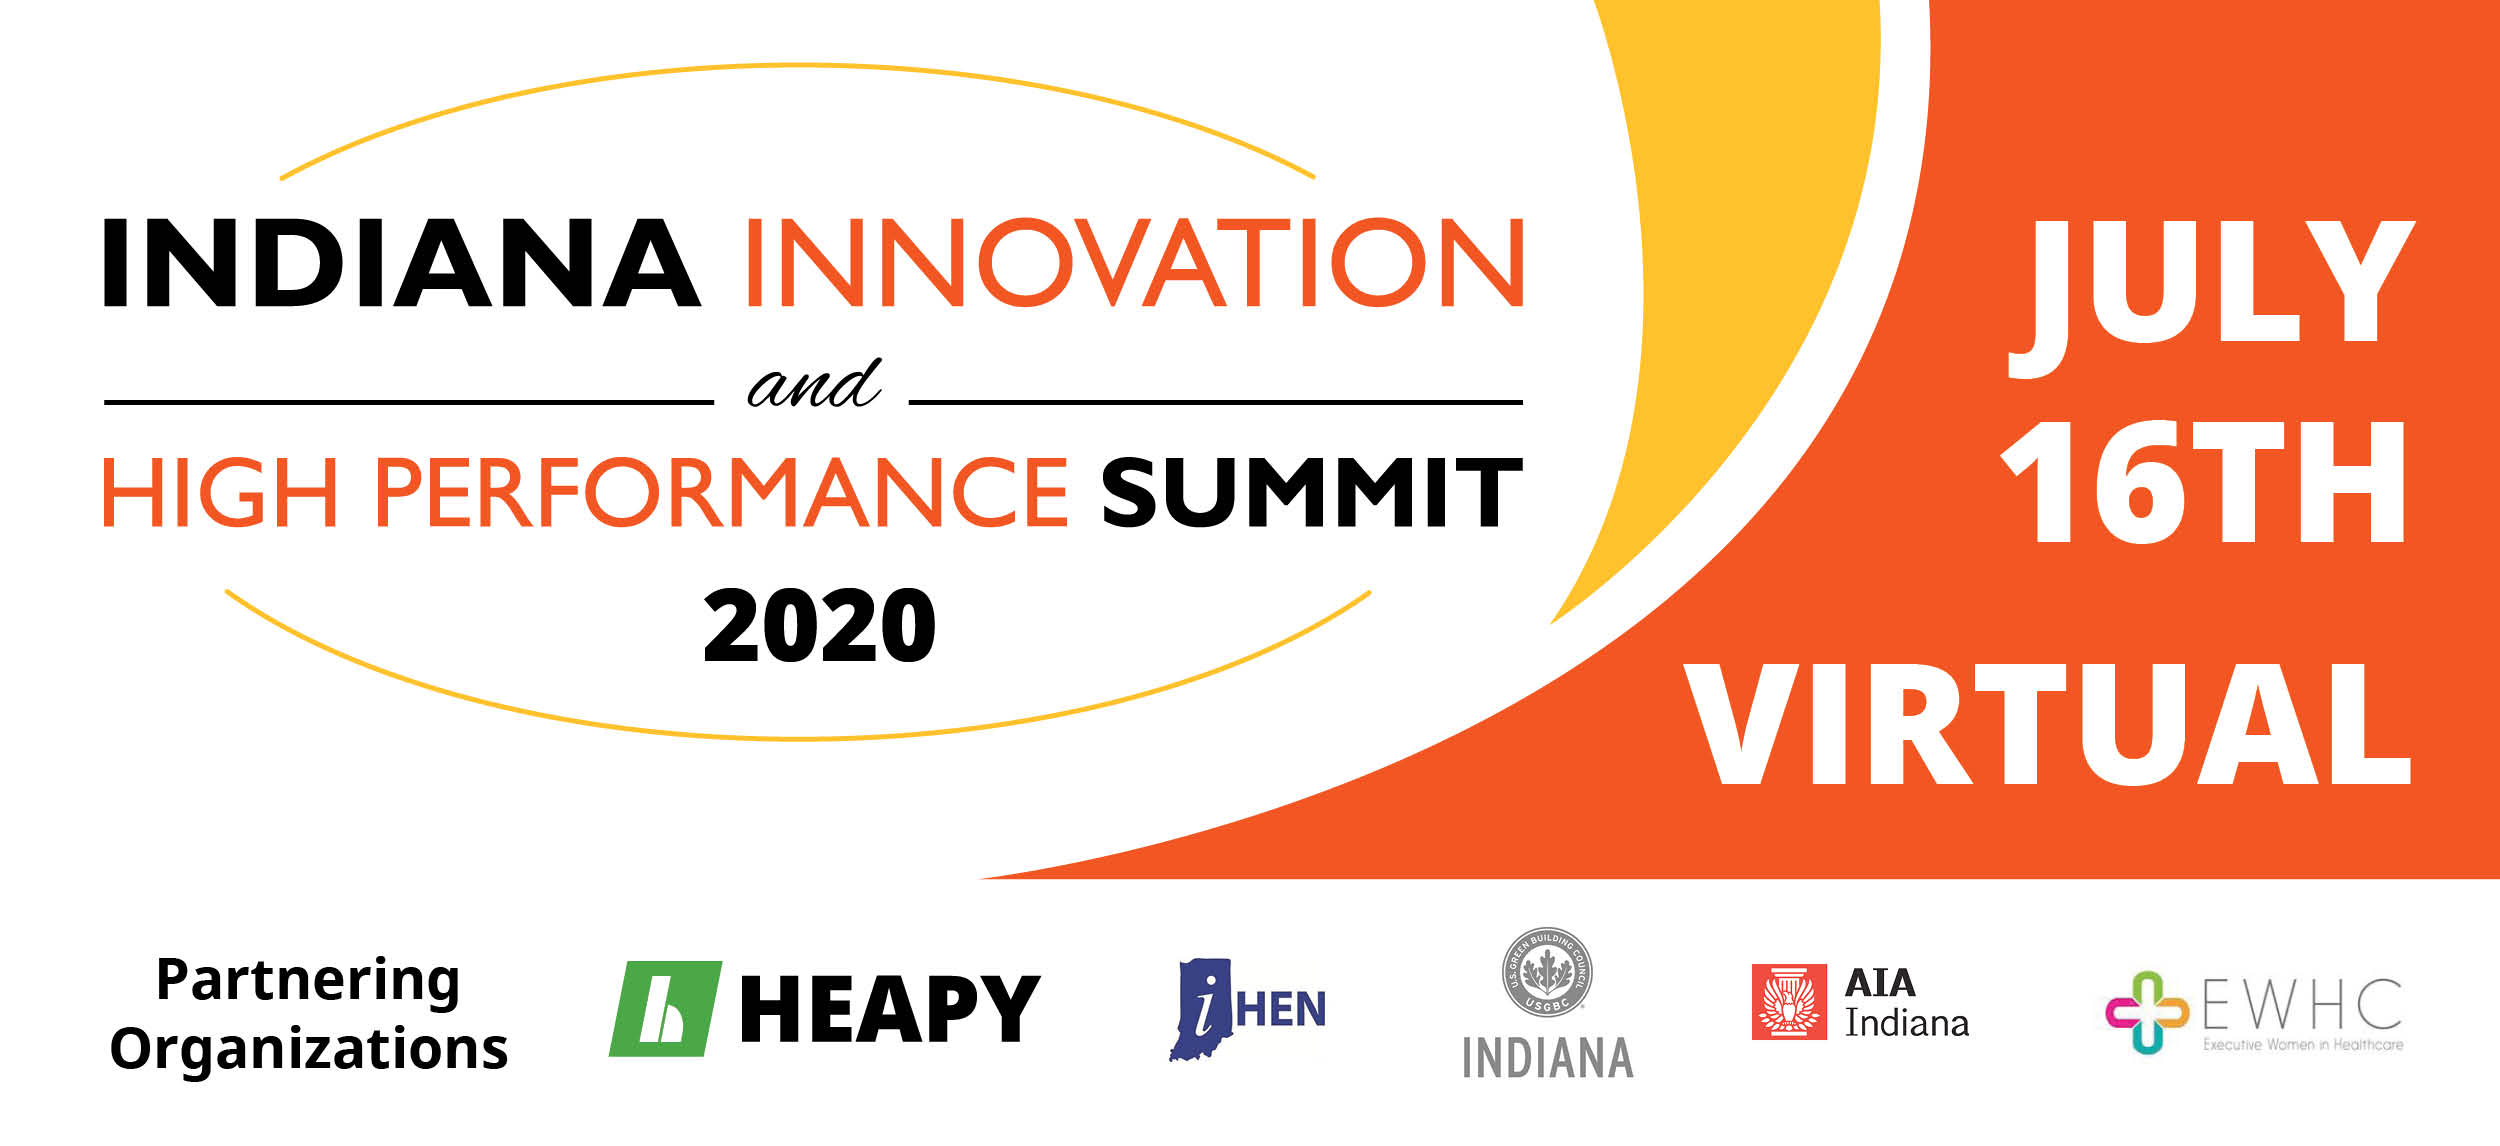 Indian Innovation and High Performance Summit 2020 Virtual